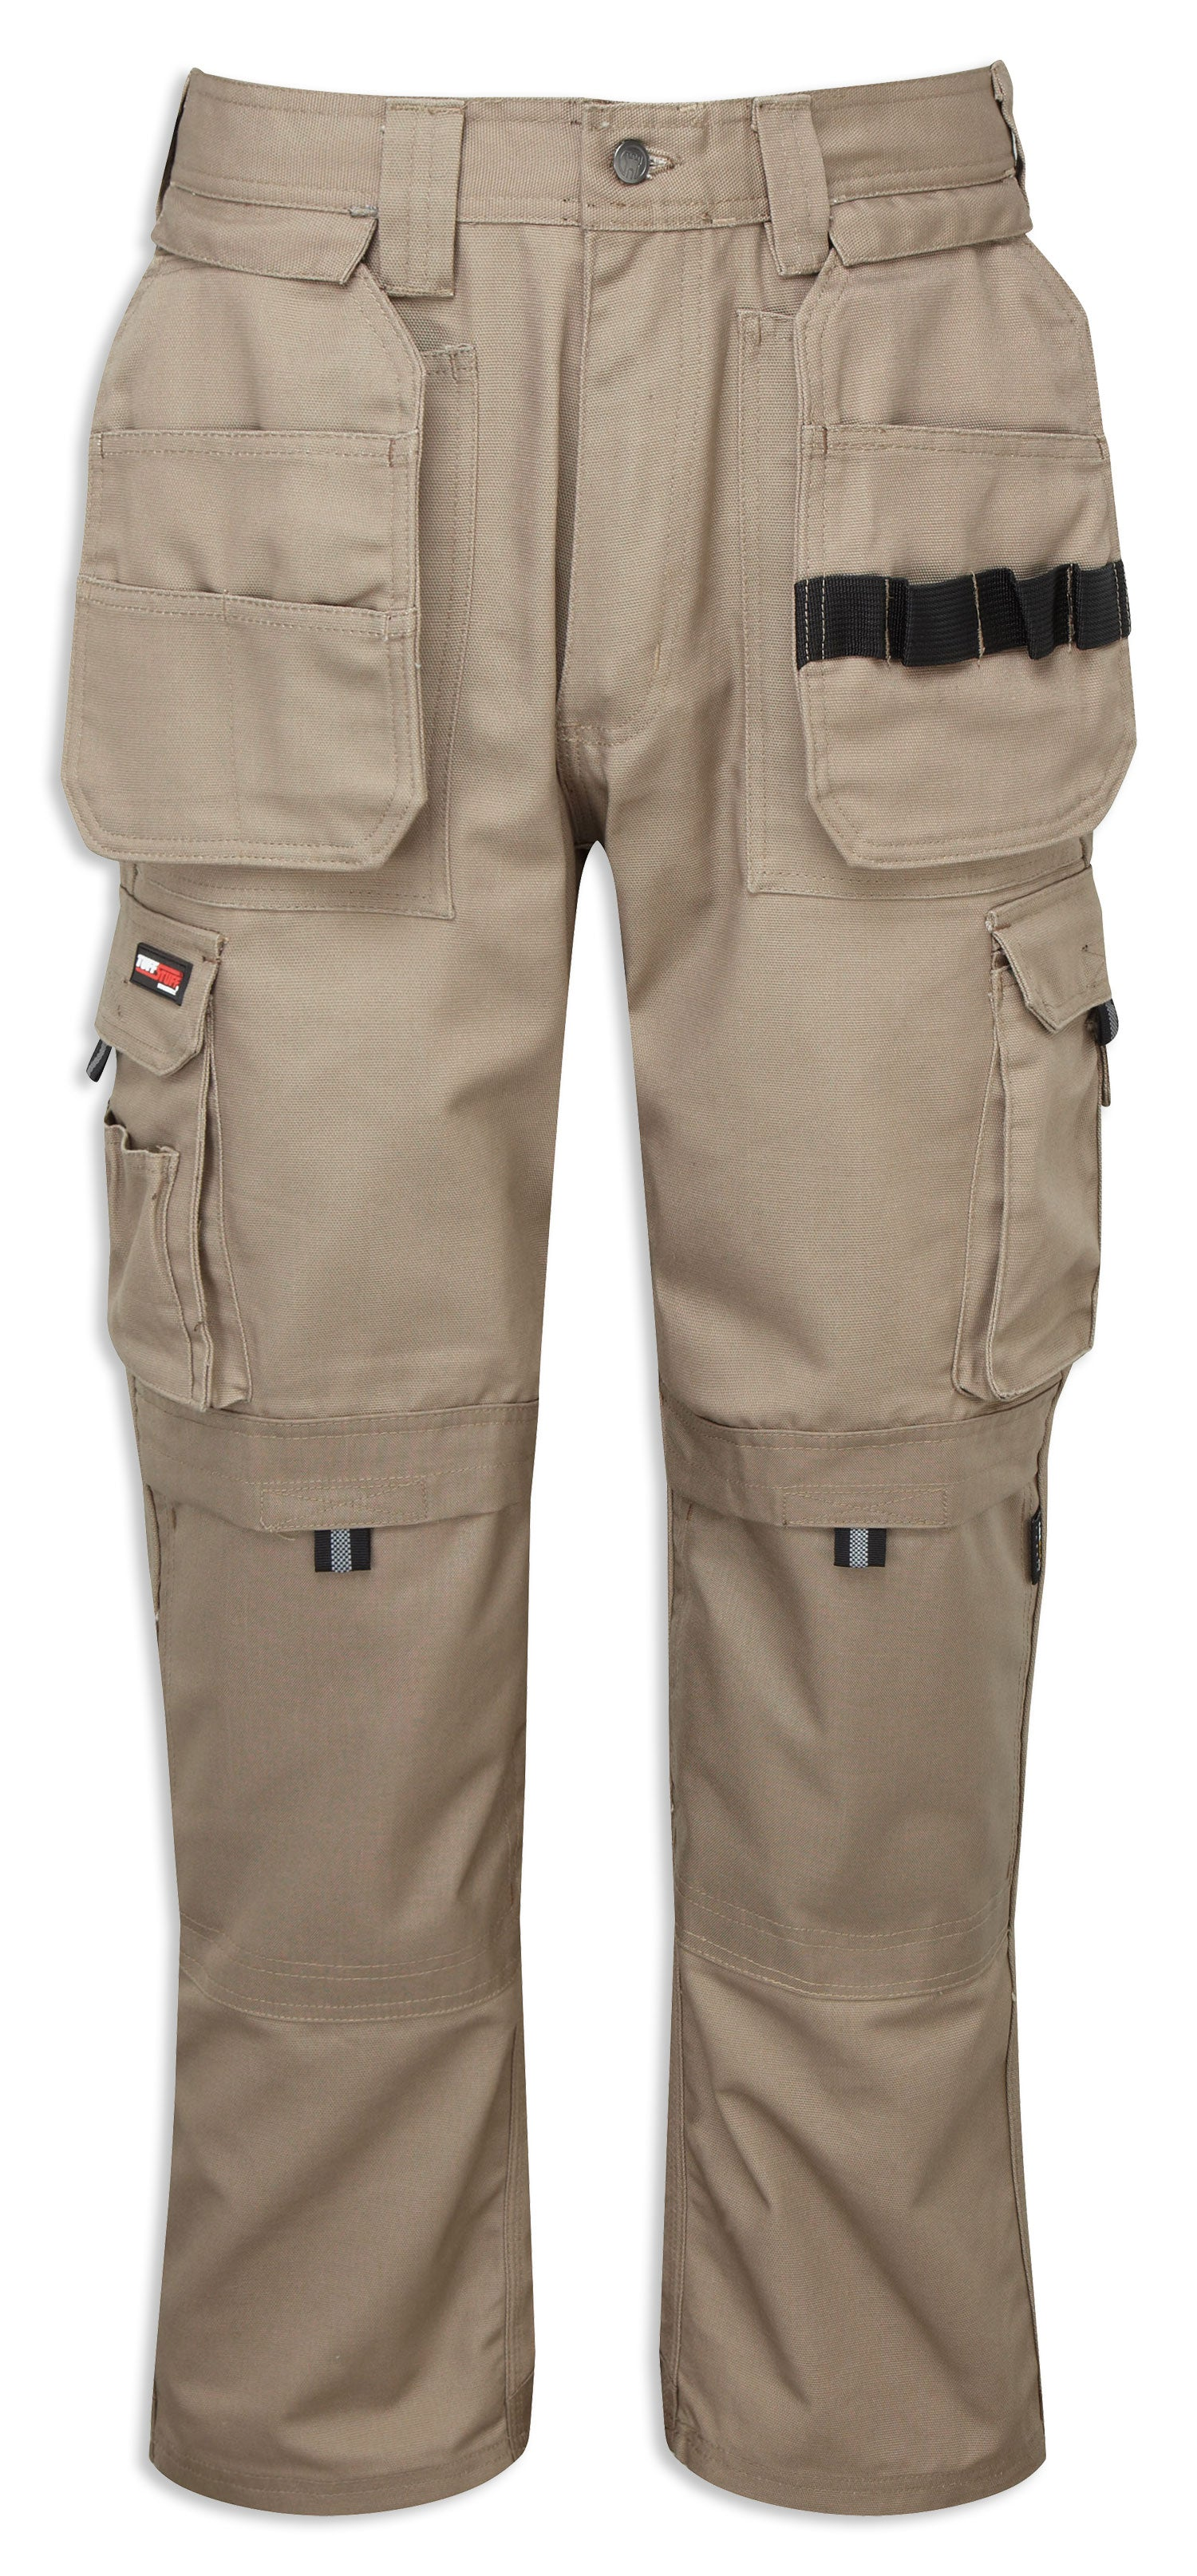 Stone Extreme Multi-pocket Tuffstuff Work Trousers